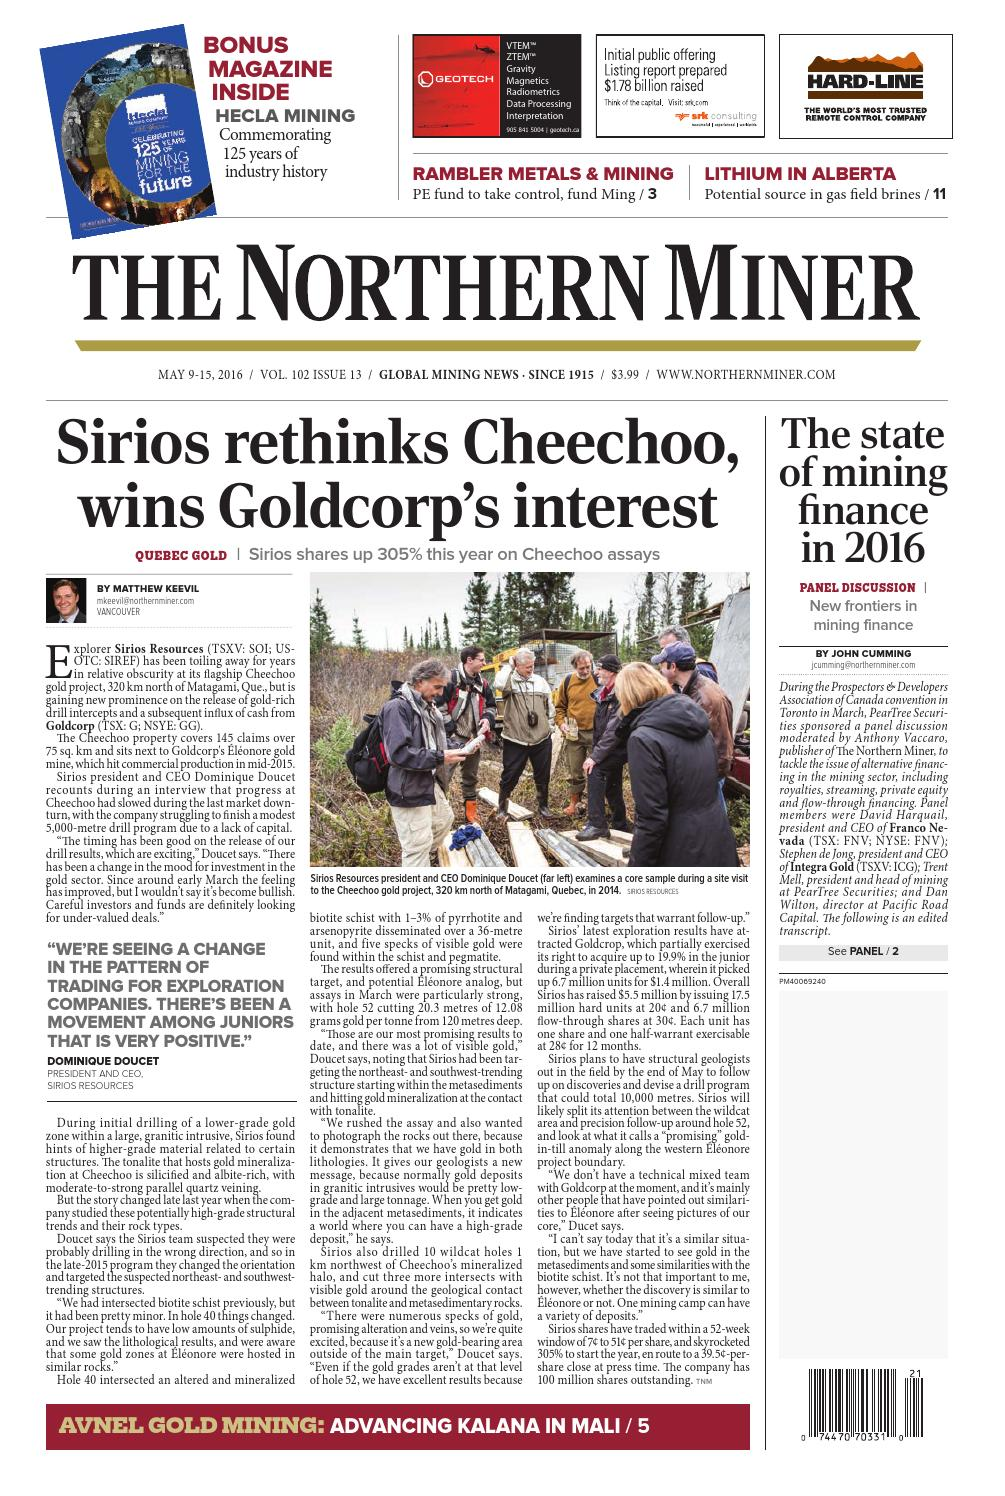 The Northern Miner May 9 2016 Issue by The Northern Miner Group - issuu